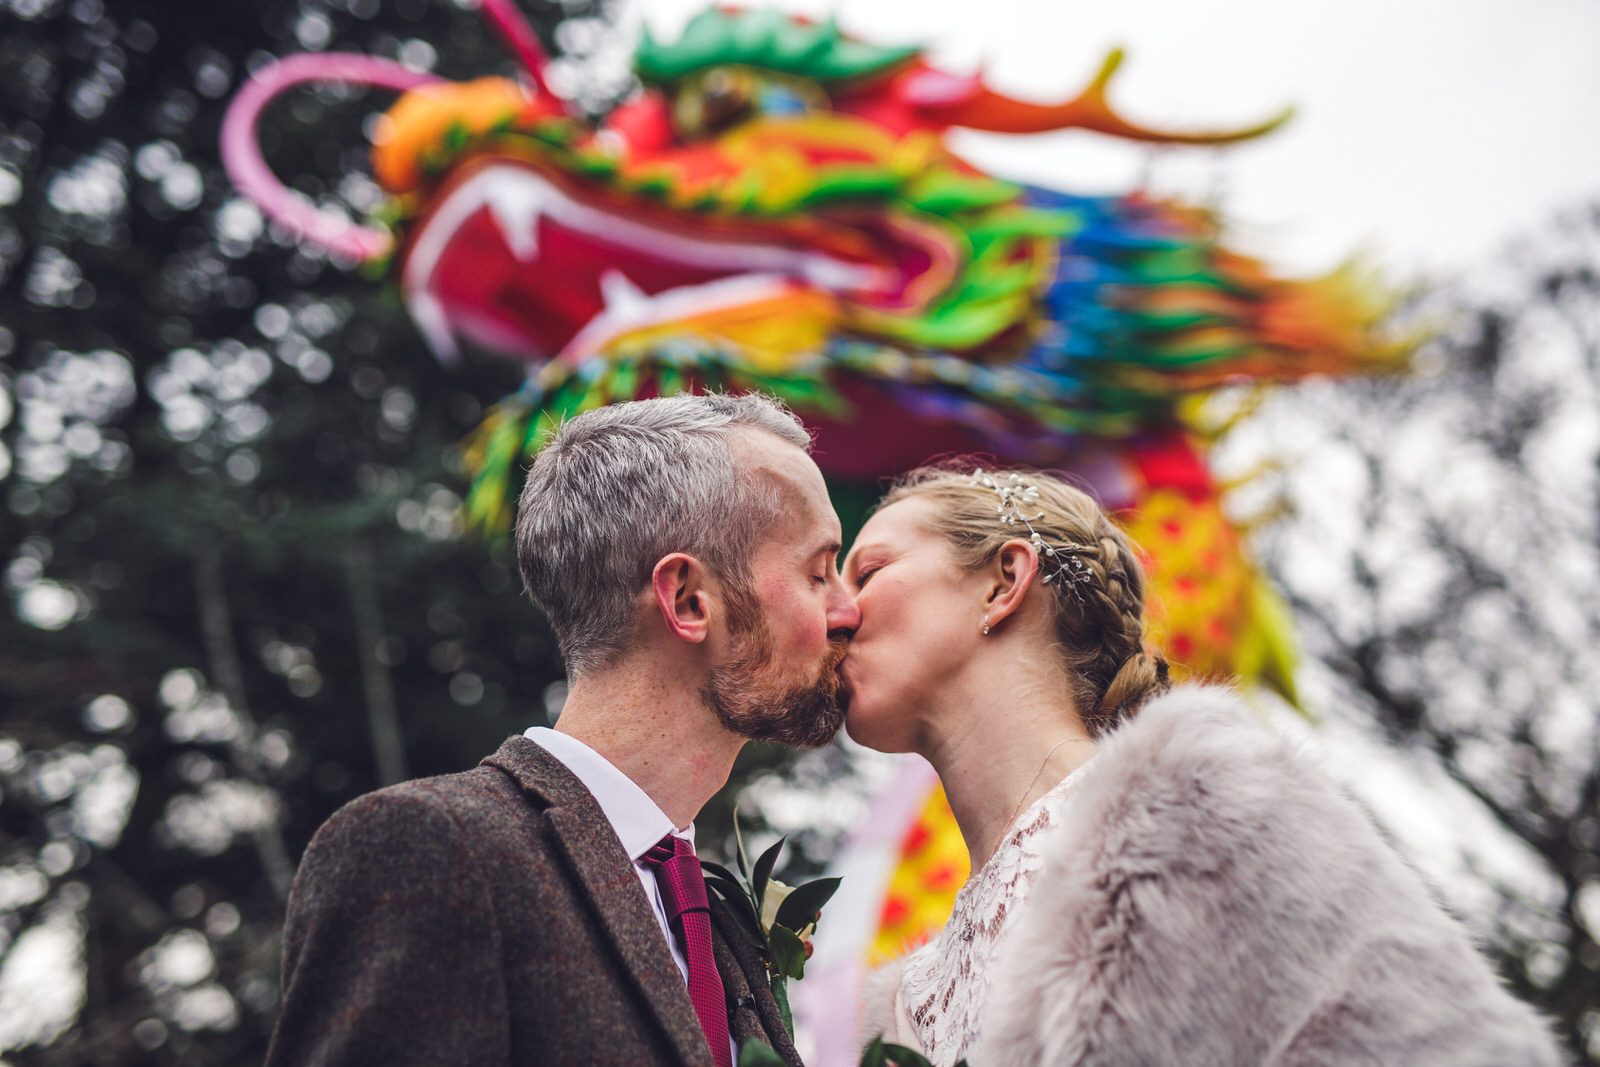 Roger_kenny-wedding-photographer-wicklow-dublin-zoo_072.jpg